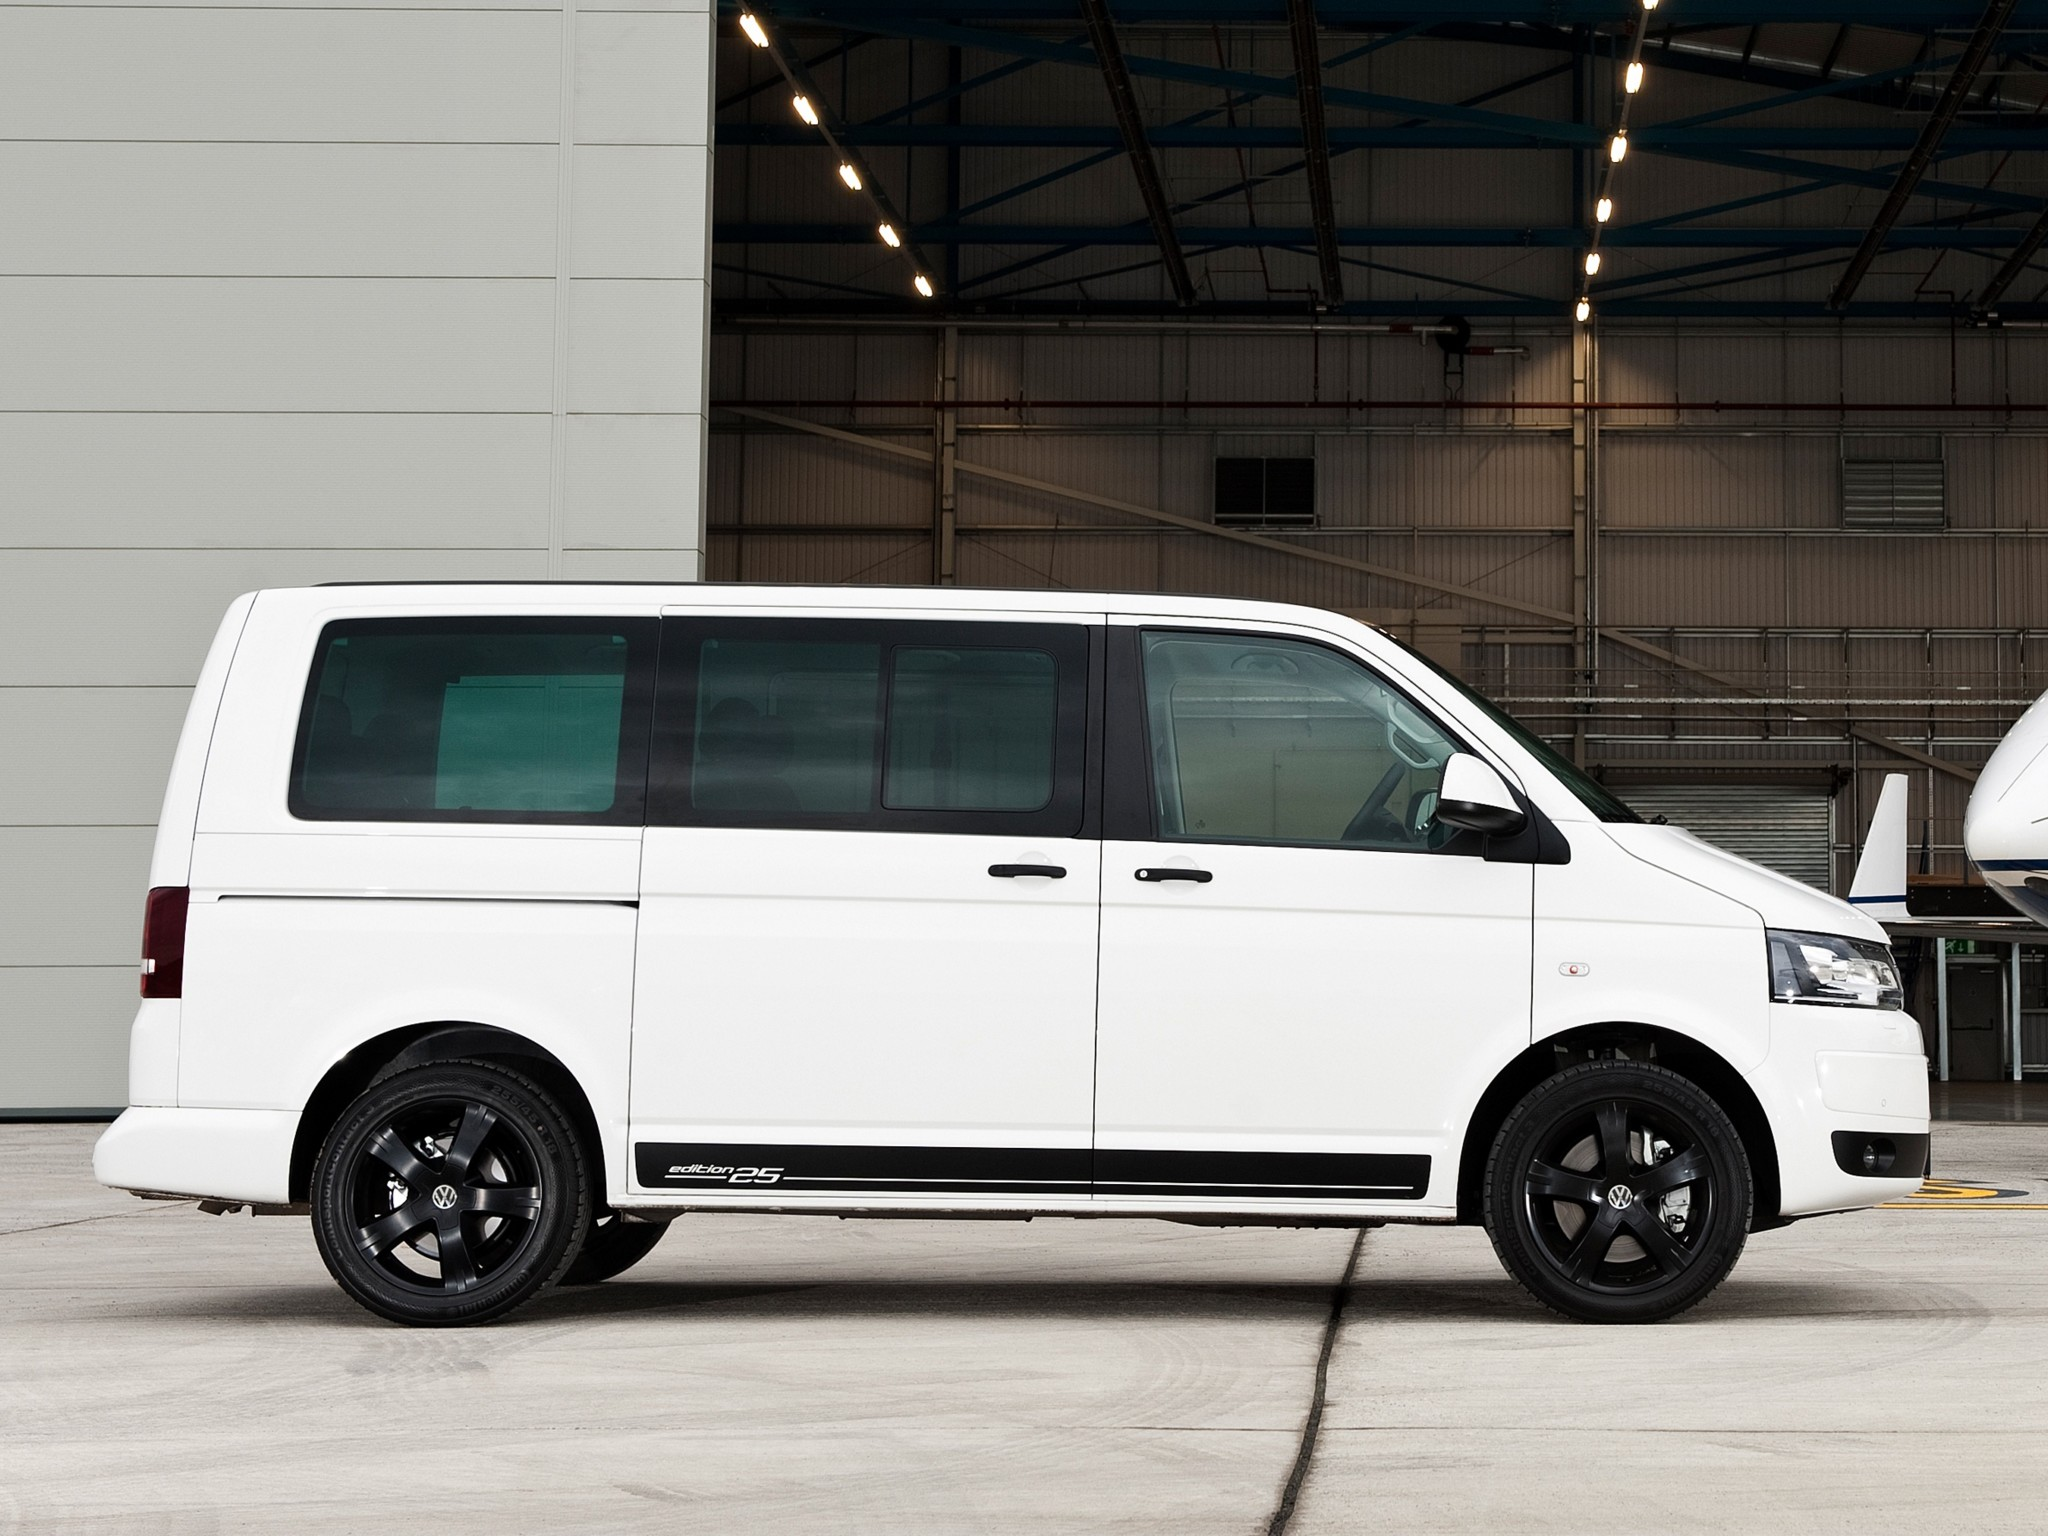 car in pictures car photo gallery volkswagen t5 caravelle edition 25 uk 2010 photo 05. Black Bedroom Furniture Sets. Home Design Ideas